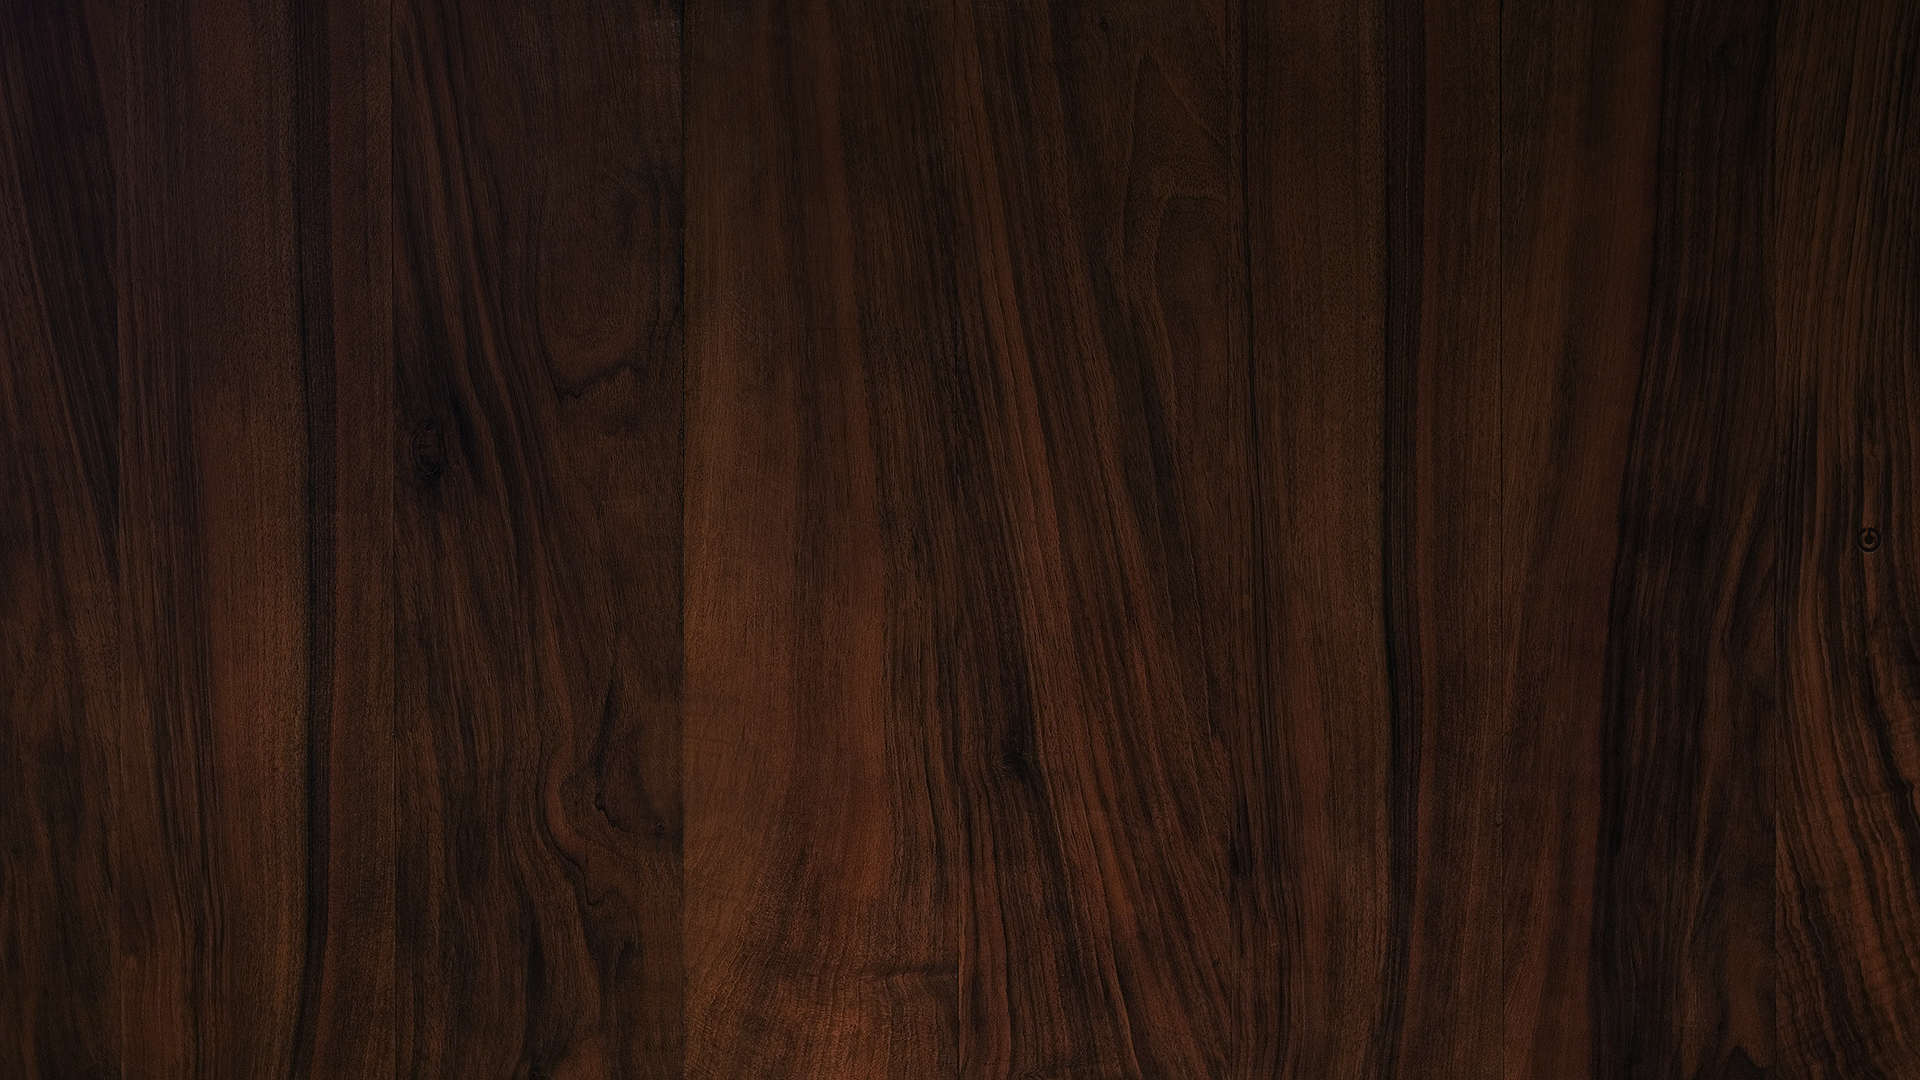 Wood HD Wallpaper | Background Image | 1920x1080 | ID:379392 - Wallpaper Abyss